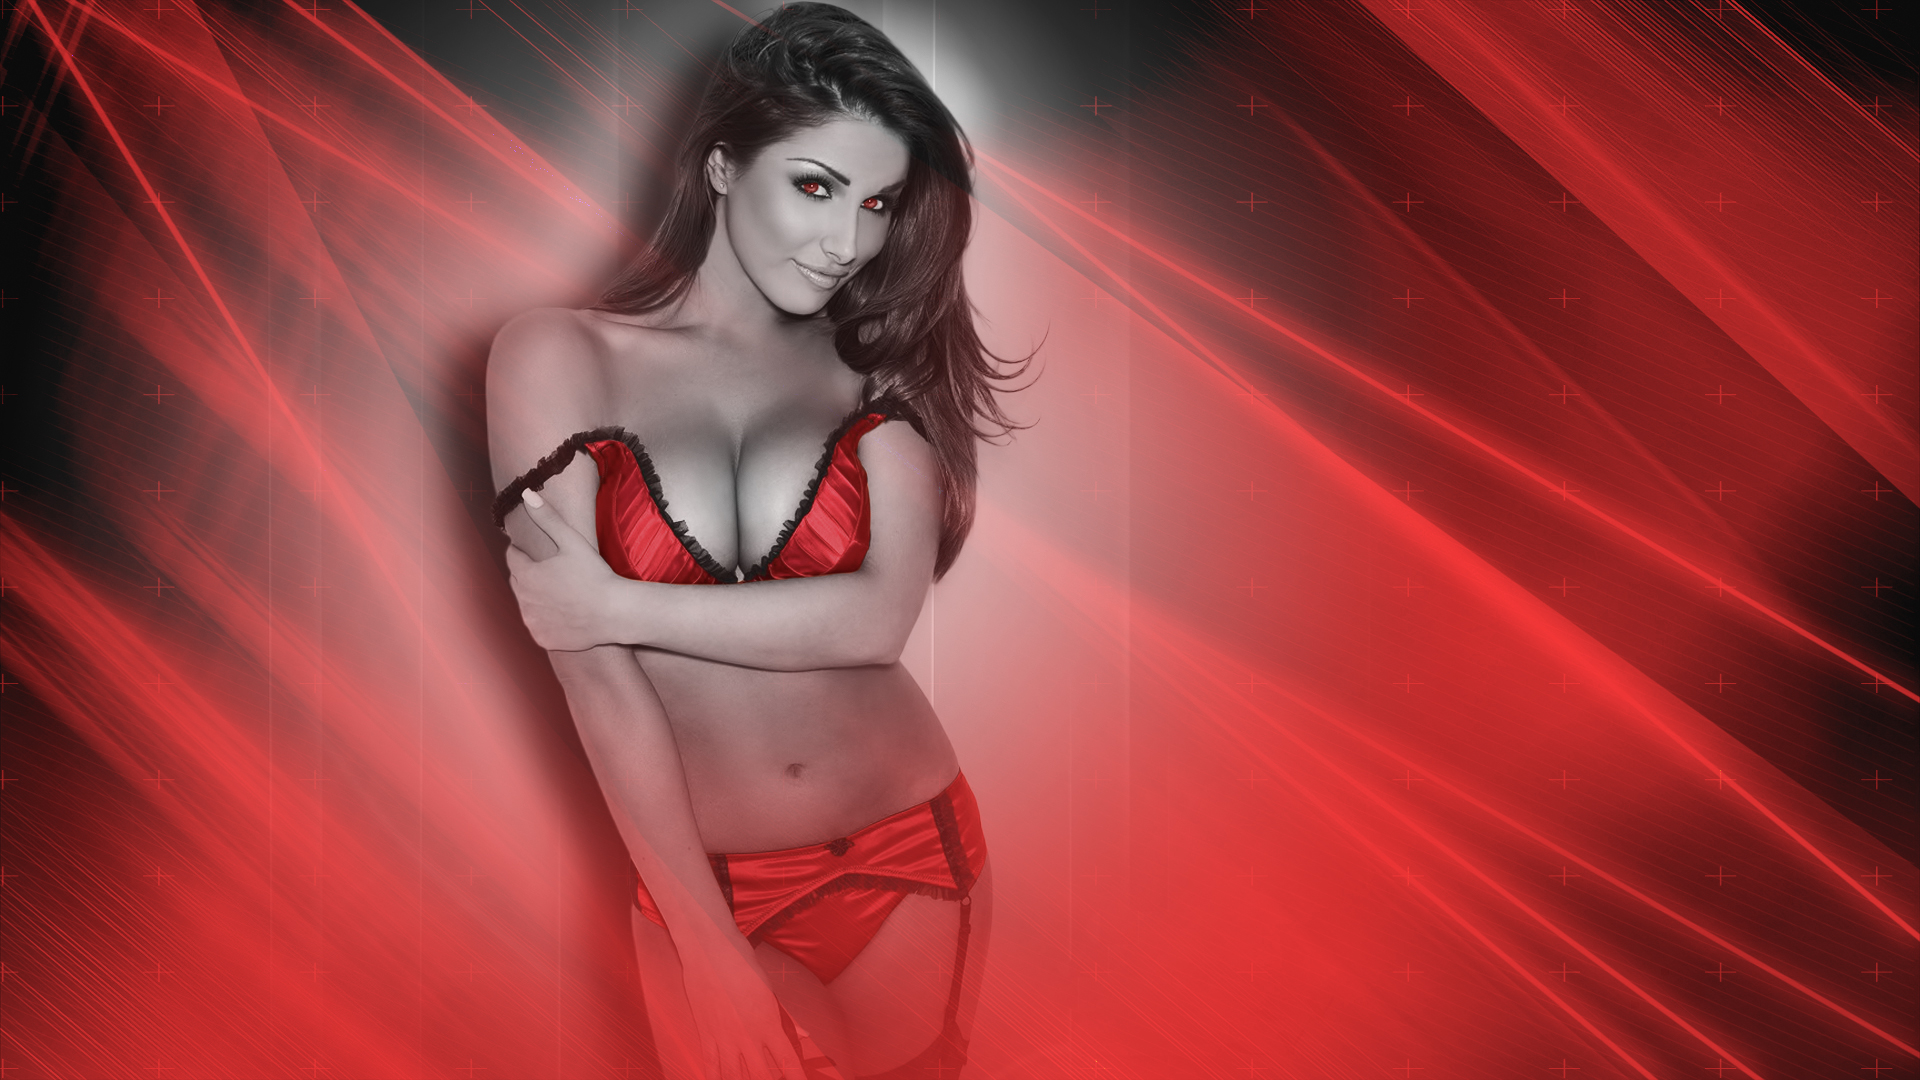 Red Lucy Pinder Wallpaper by iamsointense